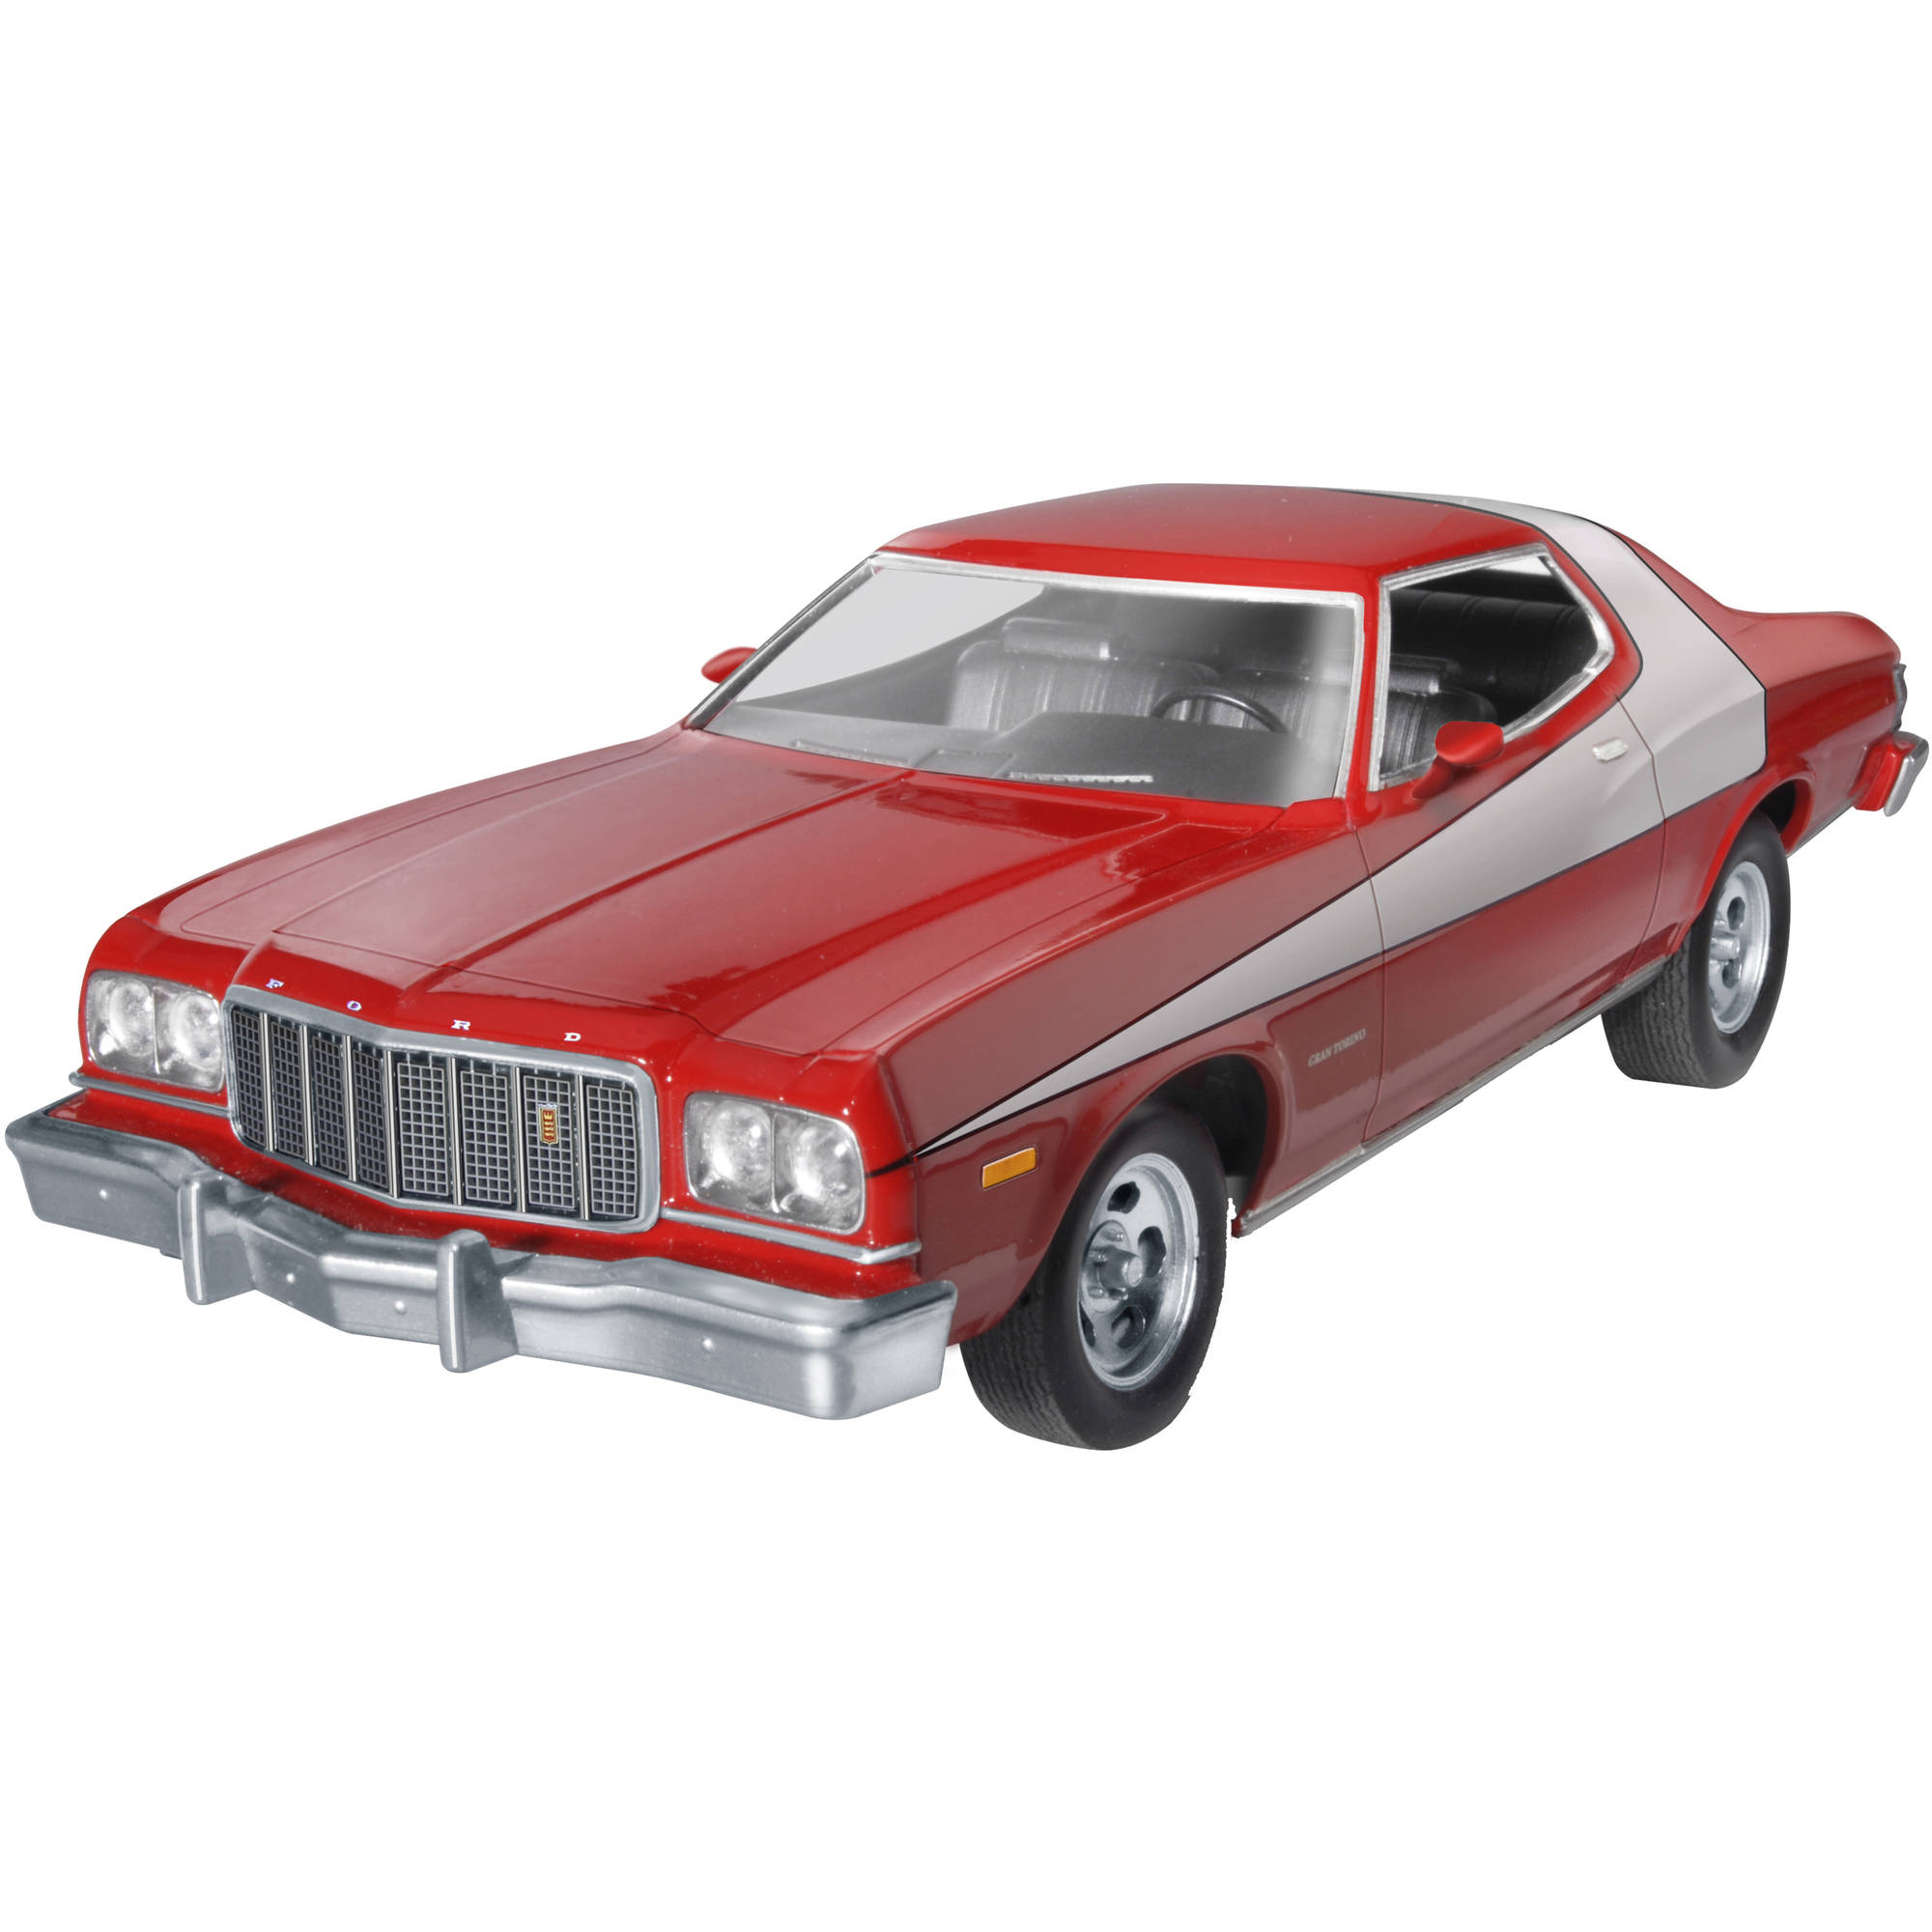 Revell® Starsky & Hutch™ Ford Torino 88 pc Model Kit